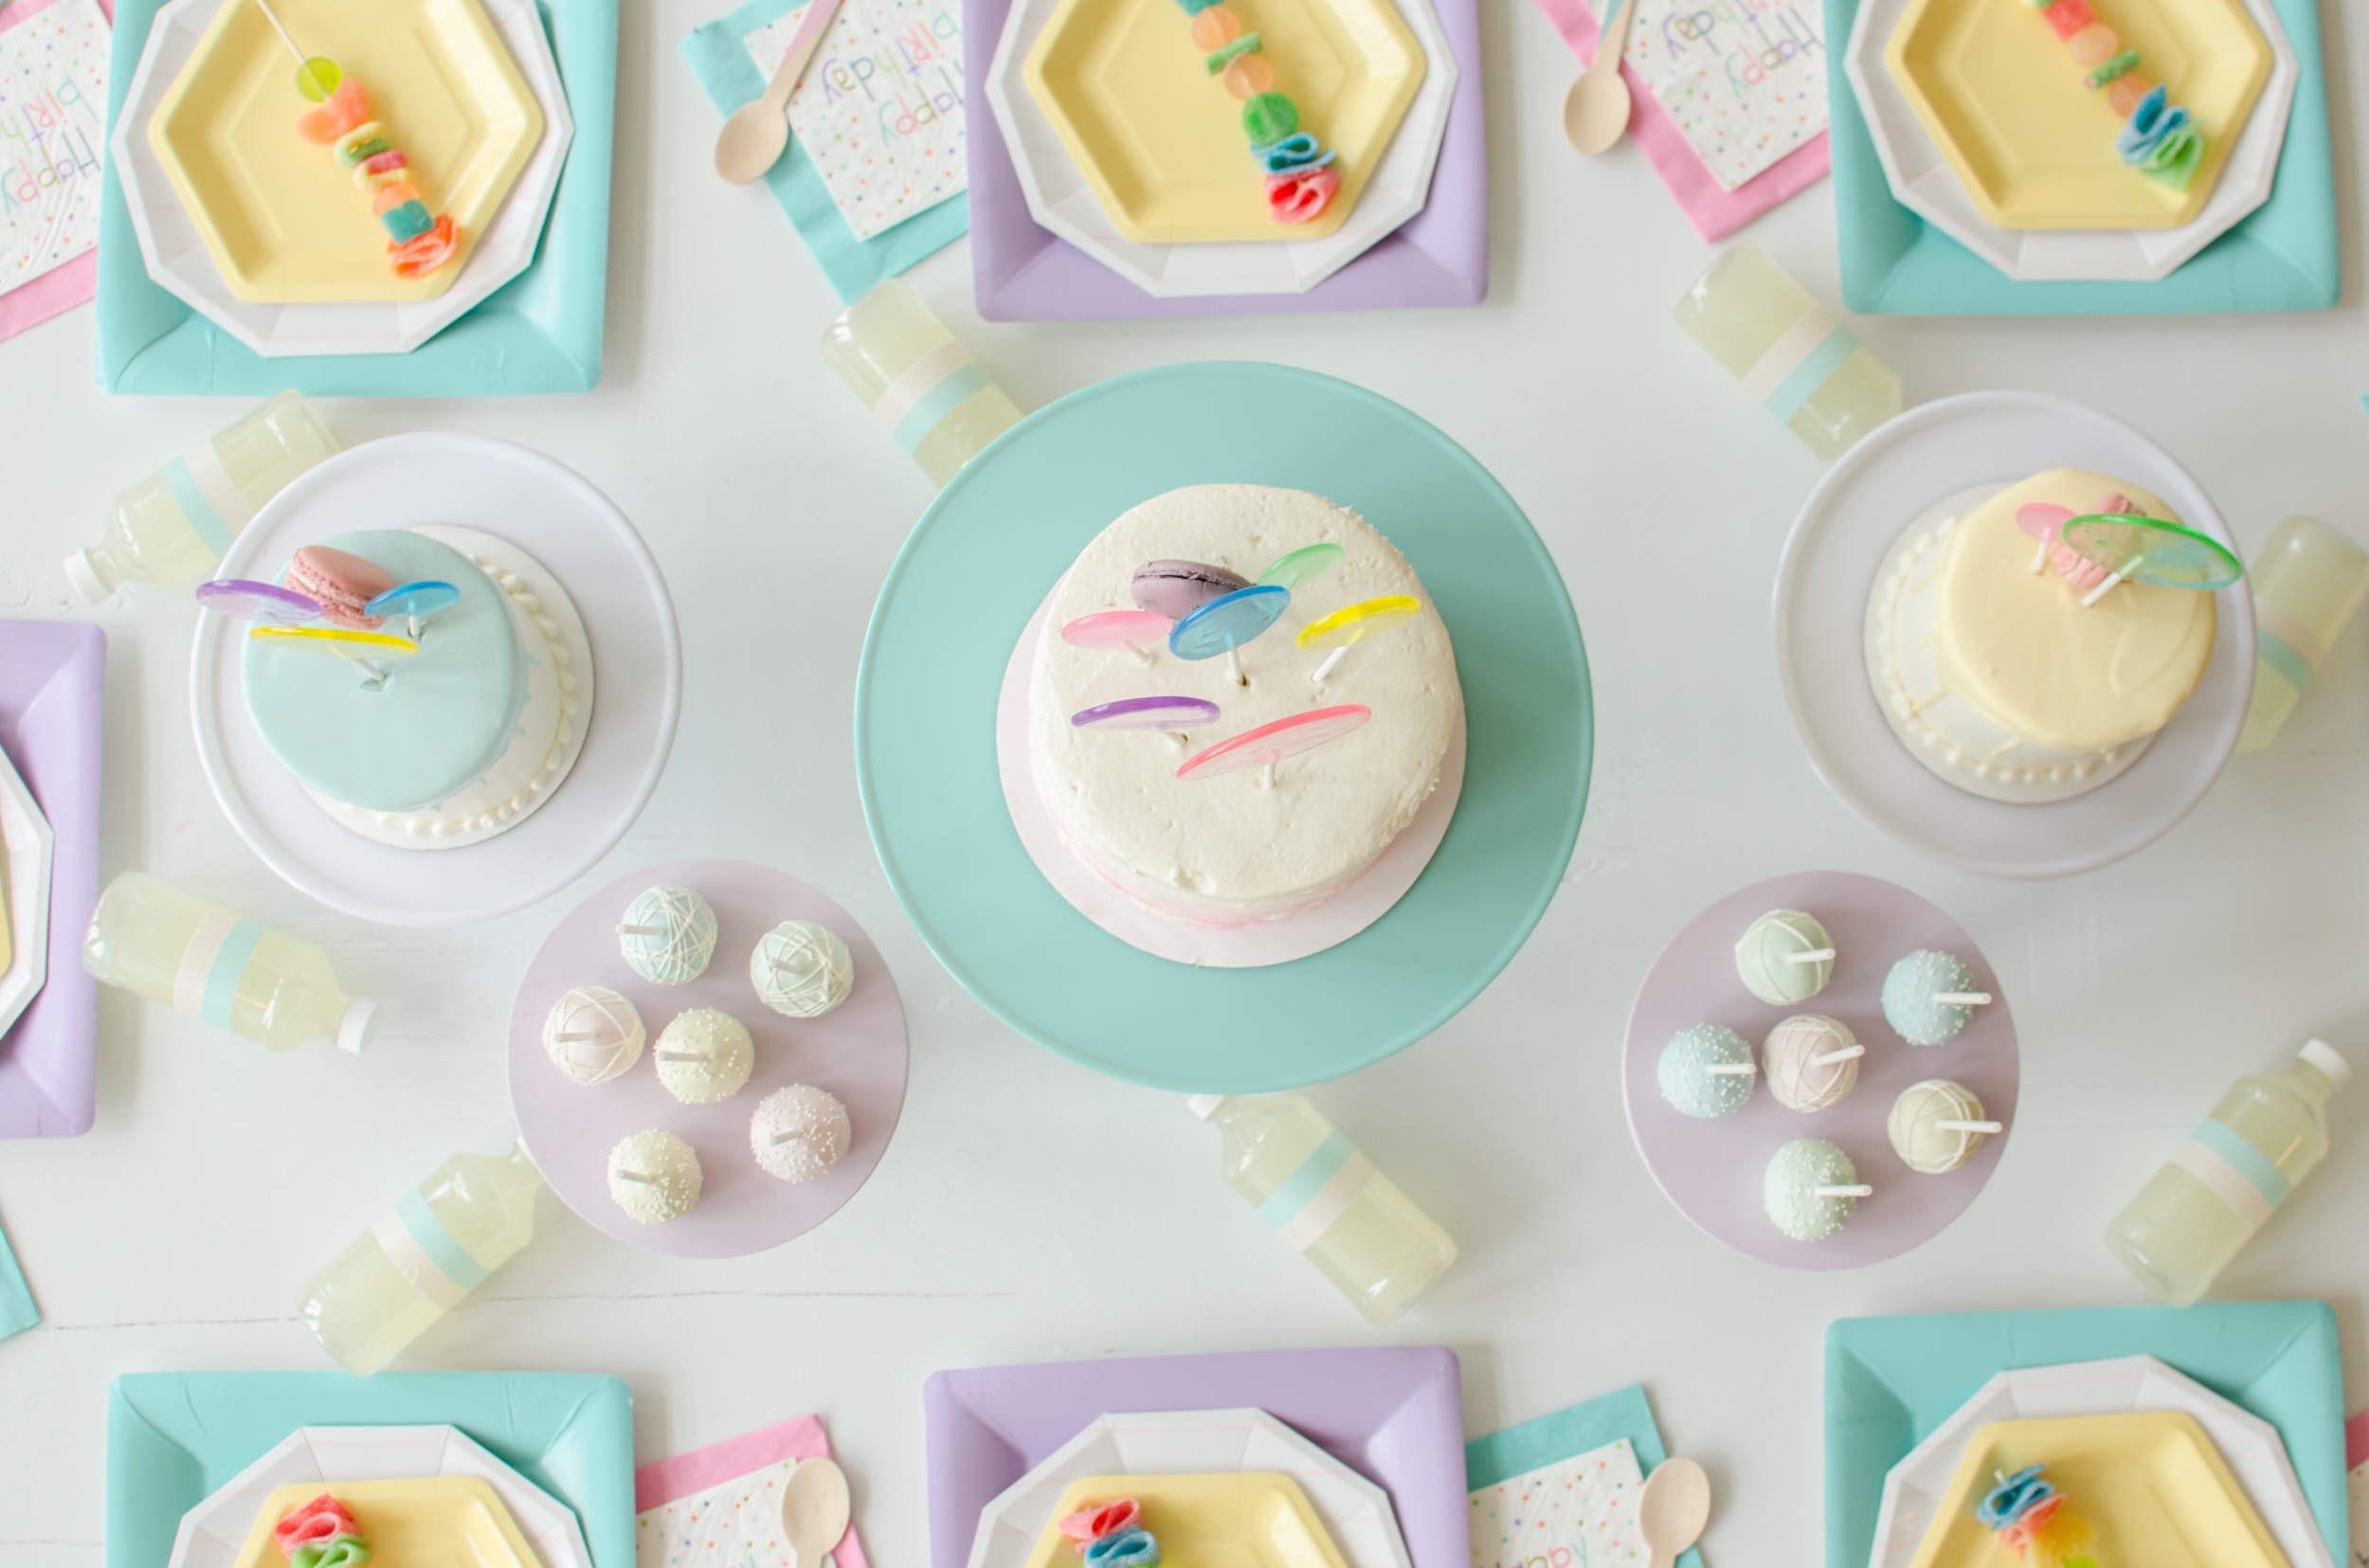 Pastel colored birthday party ideas from Mint Event Design